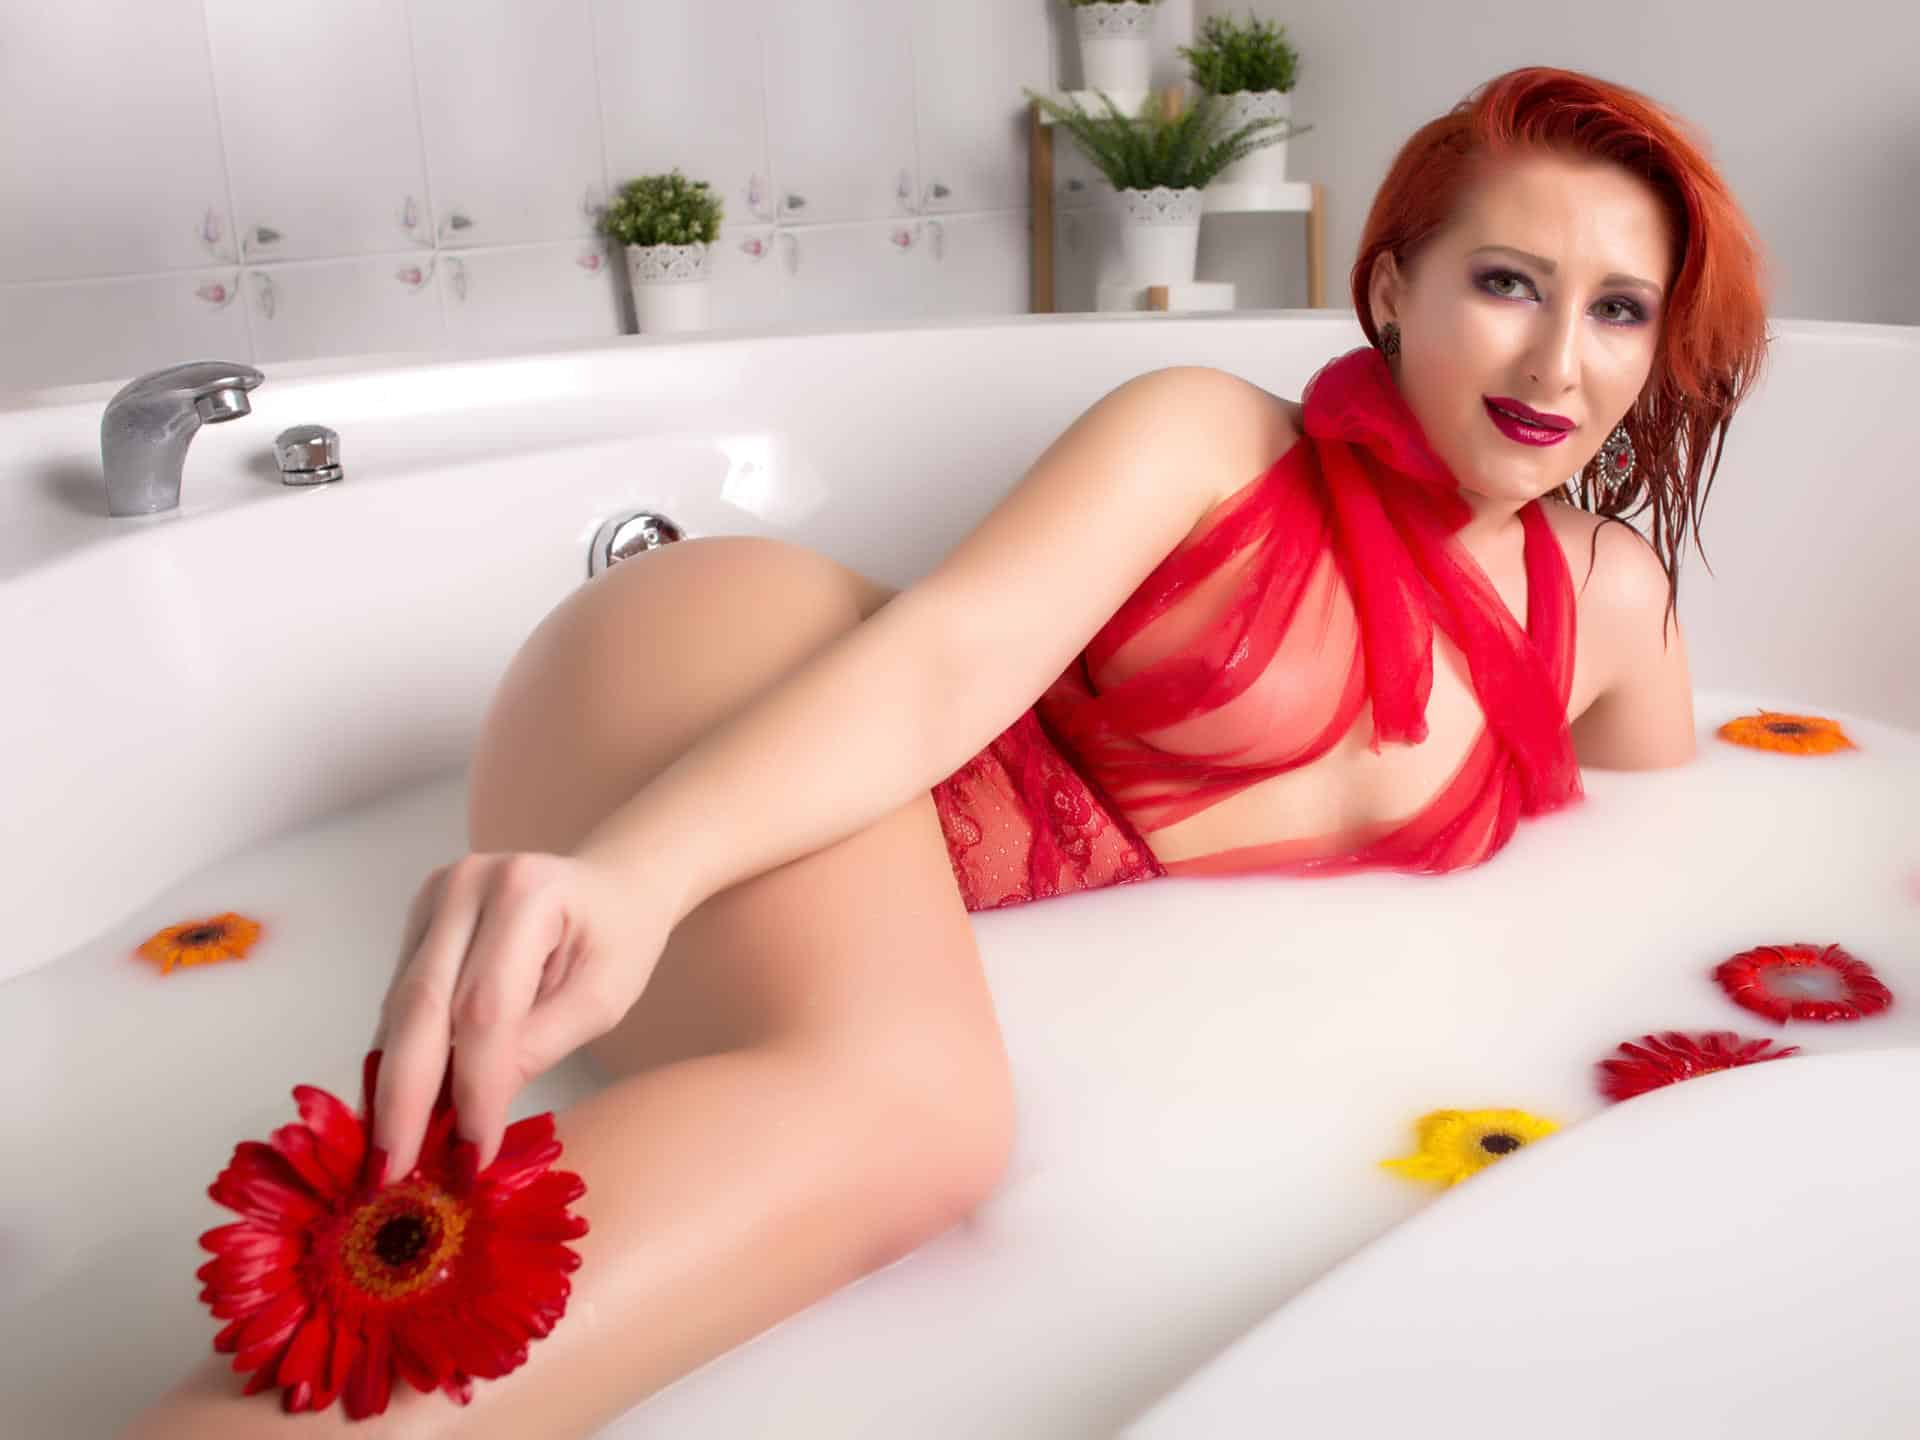 Redhead, Red-HOT Angels Cumming Straight OUT of the SEX CAMS